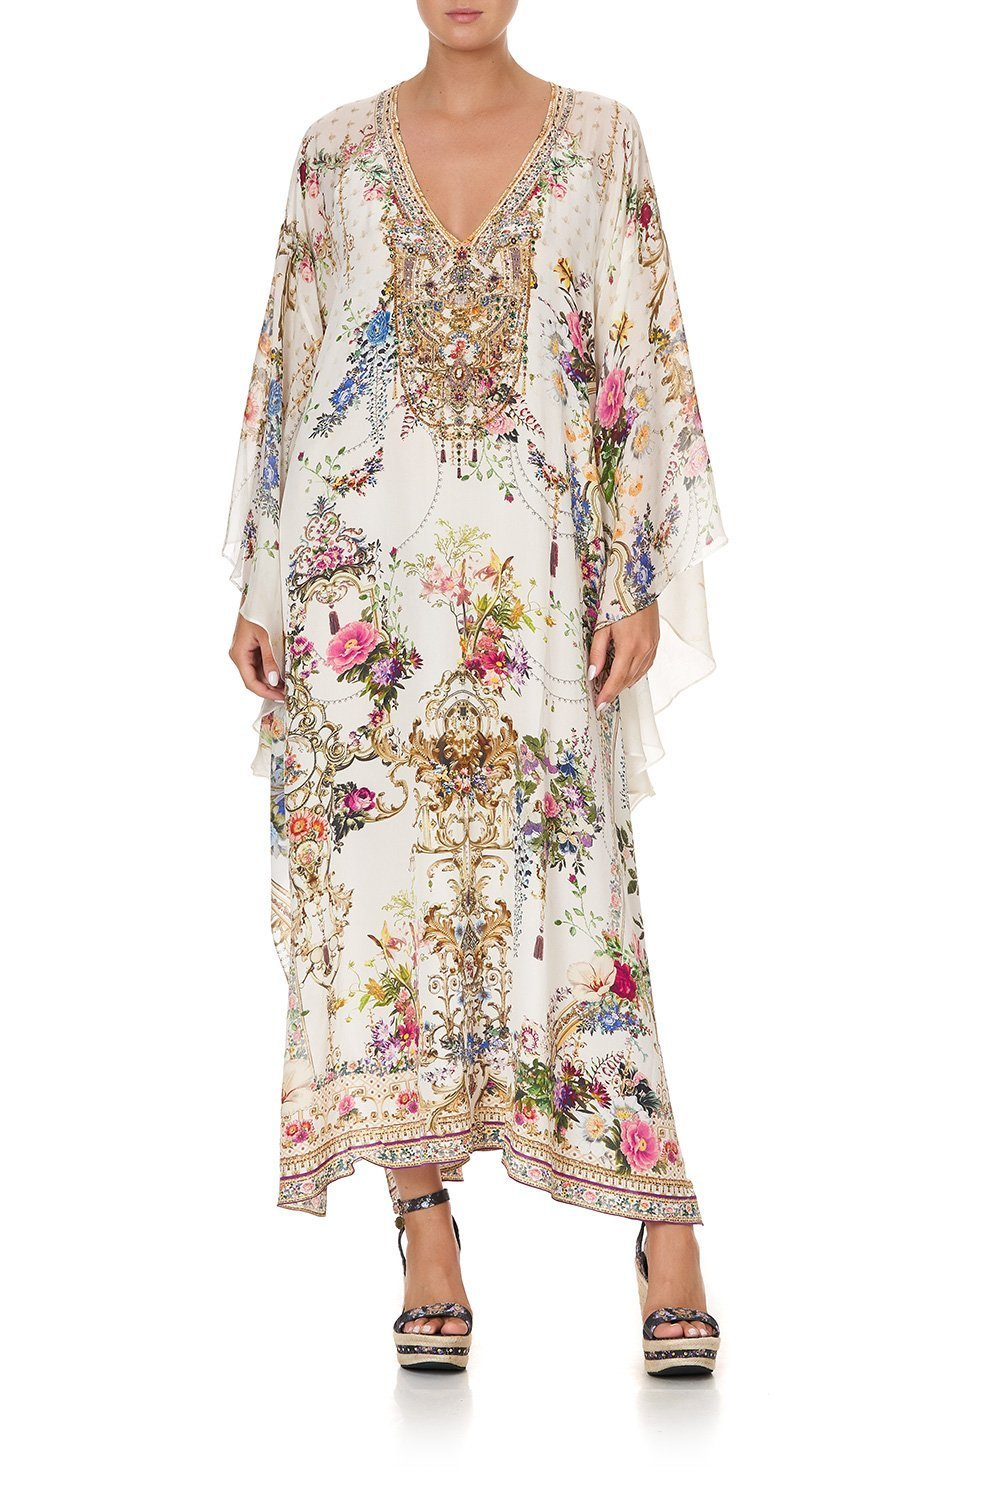 CAMILLA_00011115_BY_THE_MEADOW_LONG_RAGLAN_SLEEVE_FLARED_KAFTAN_1_1024x1024@2x